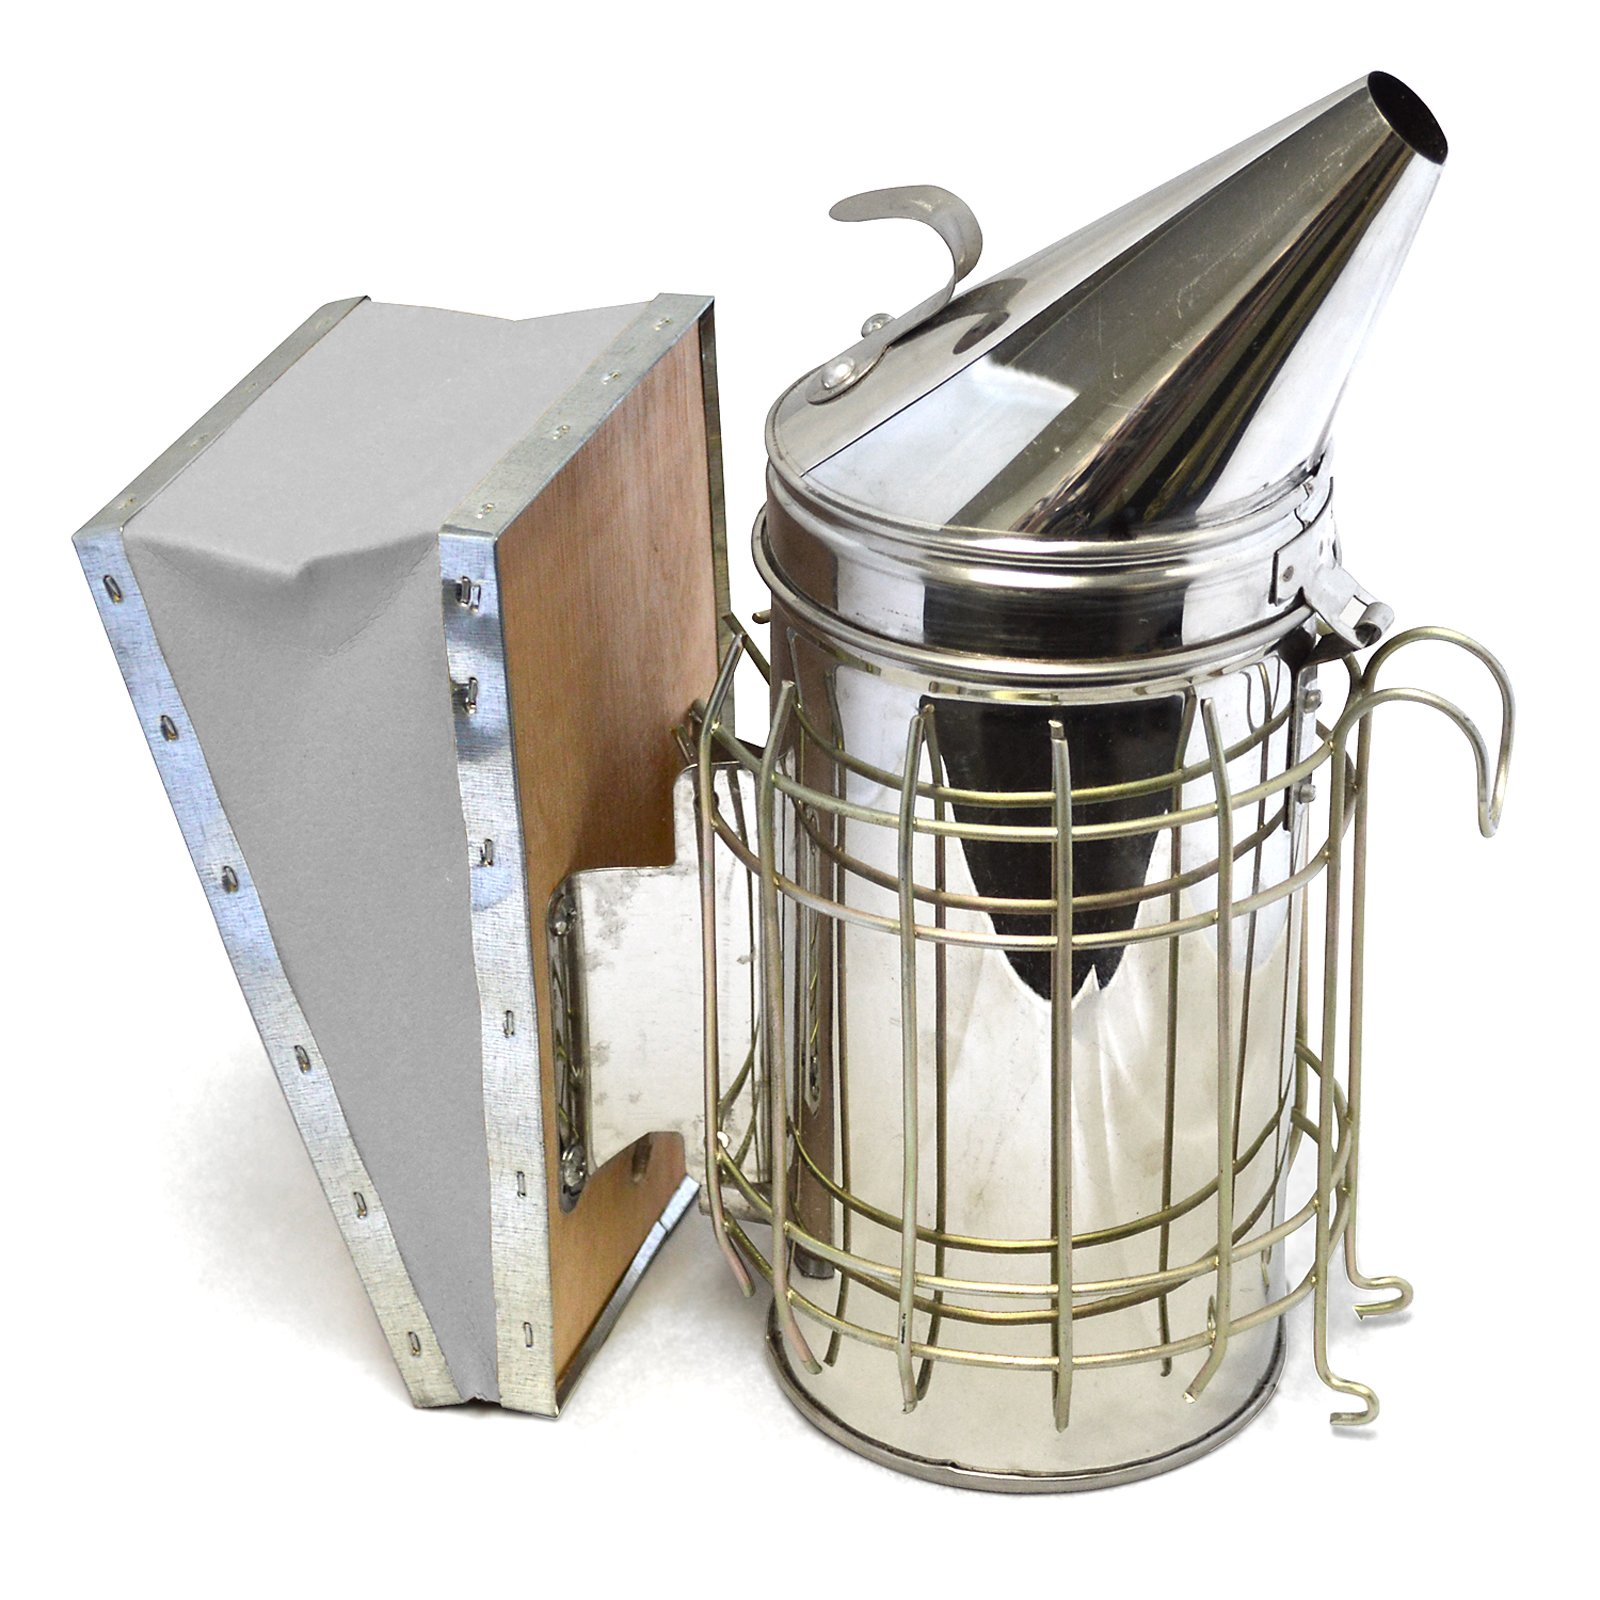 CO-Z Bee Smoker, Stainless Steel Beehive Smoker with Heat Shield Protection, Beekeeping Equipment Kit for Starter Beekeeper by CO-Z